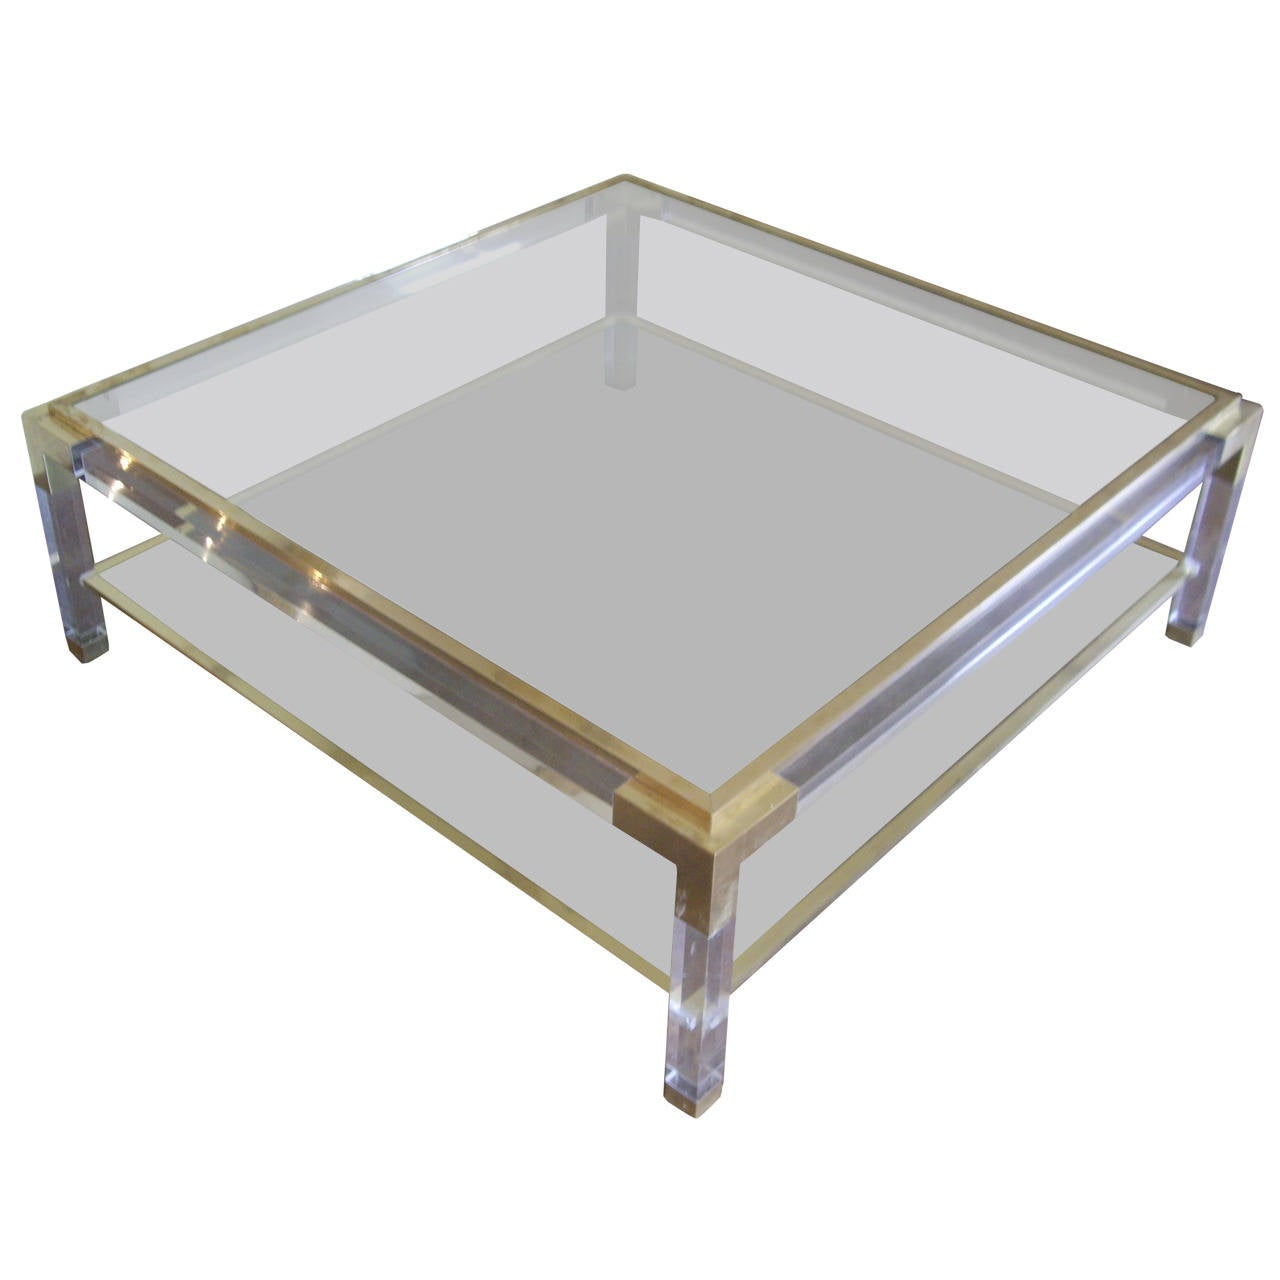 Vintage brass lucite and glass square coffee table at 1stdibs for Coffee table